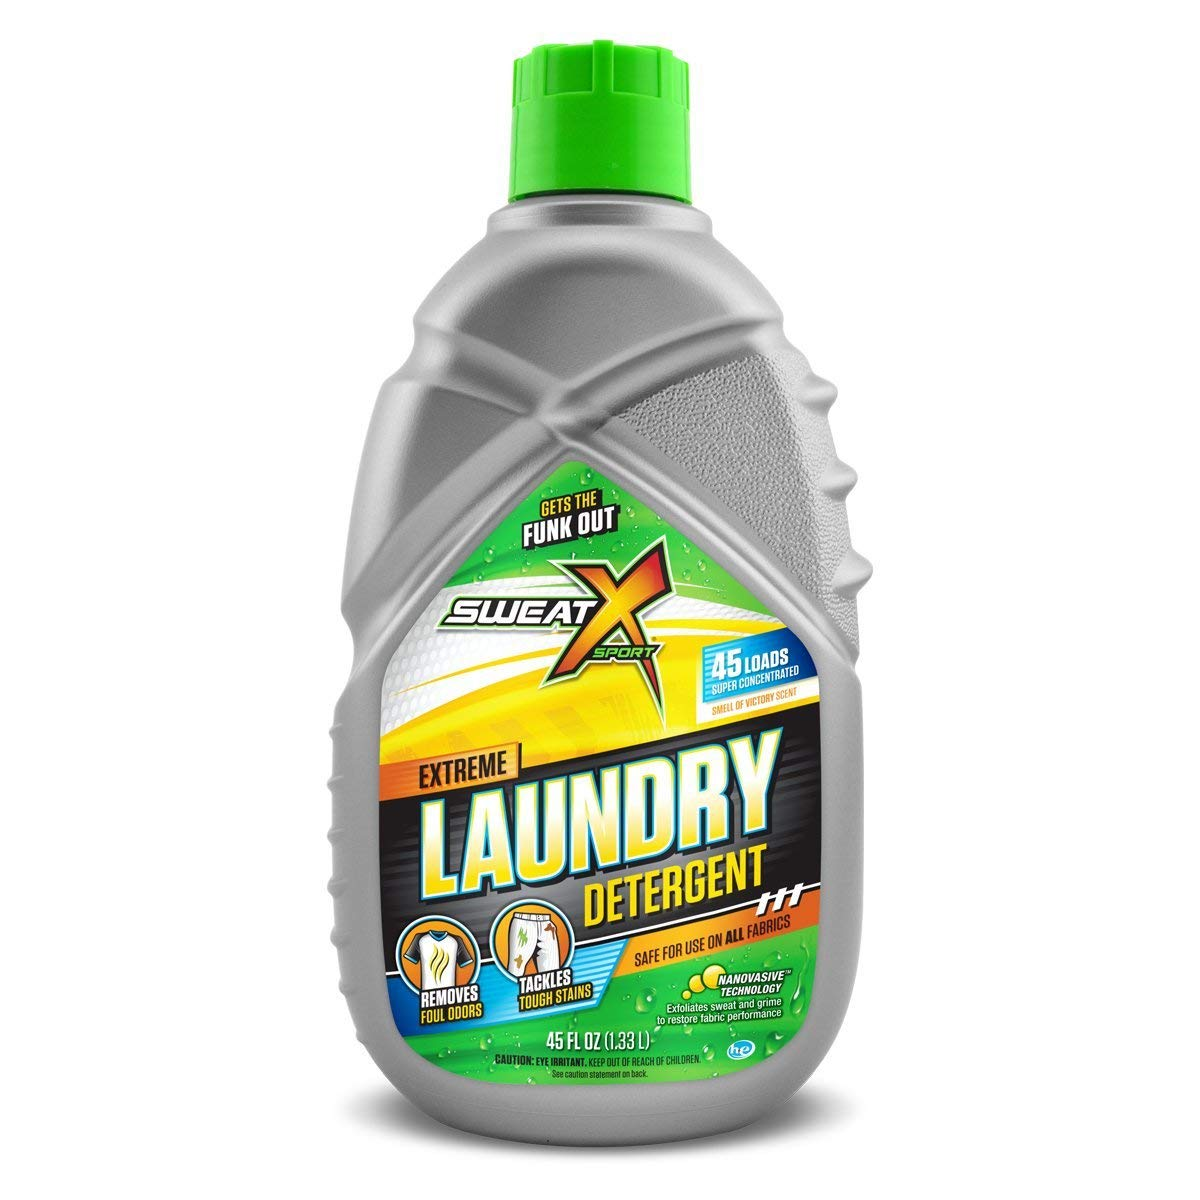 Sweat X Sport Extreme Laundry Detergent, High Performance Sports Wash for Activewear and All Fabrics, 45 Loads by Sweat X